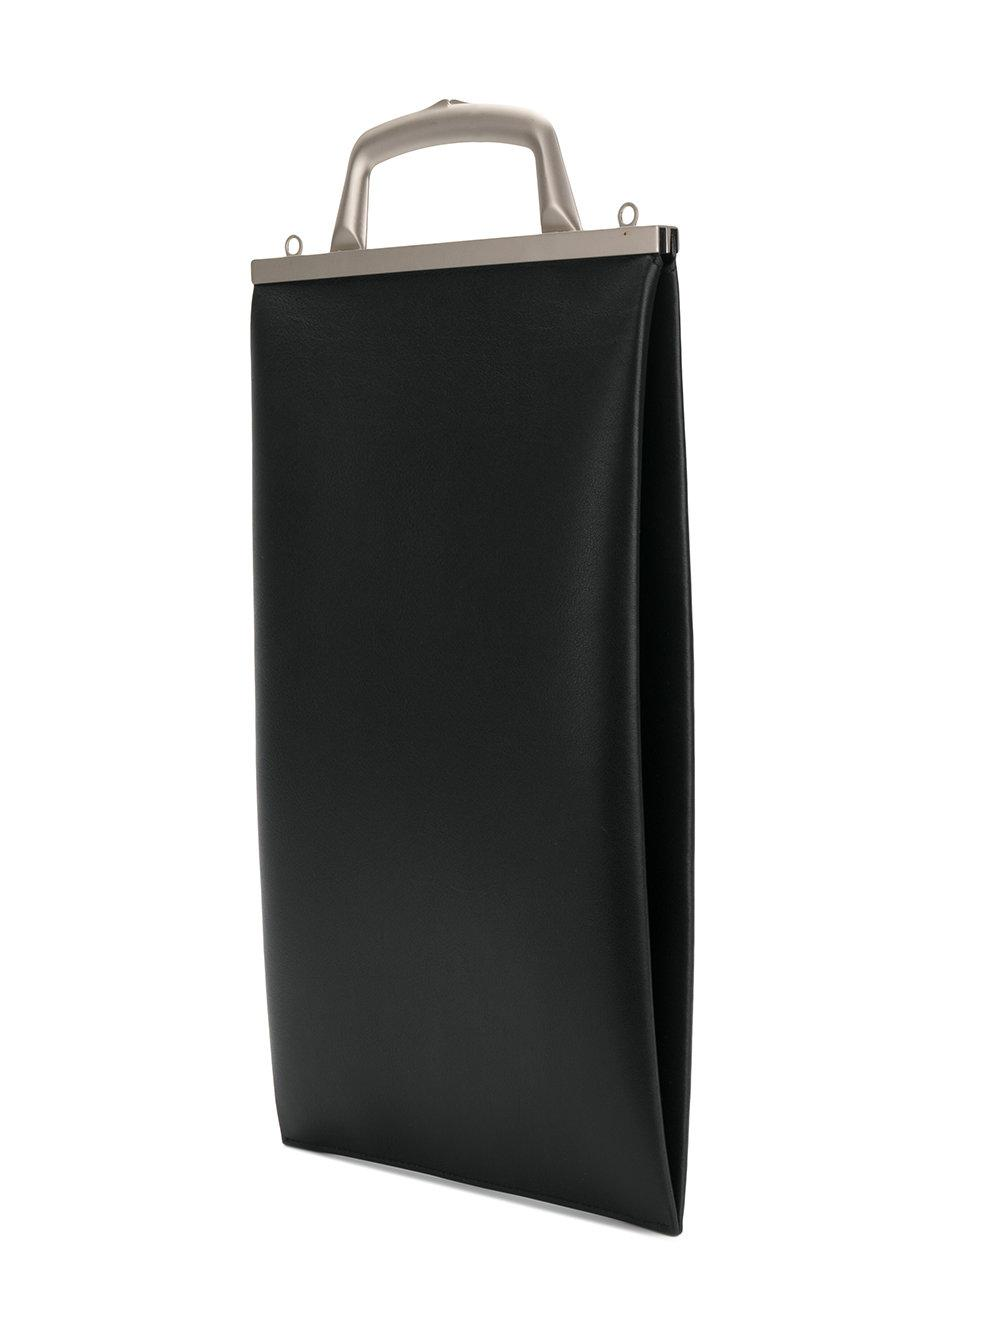 Off-White c/o Virgil Abloh Leather Text Market Tote Bag in Black